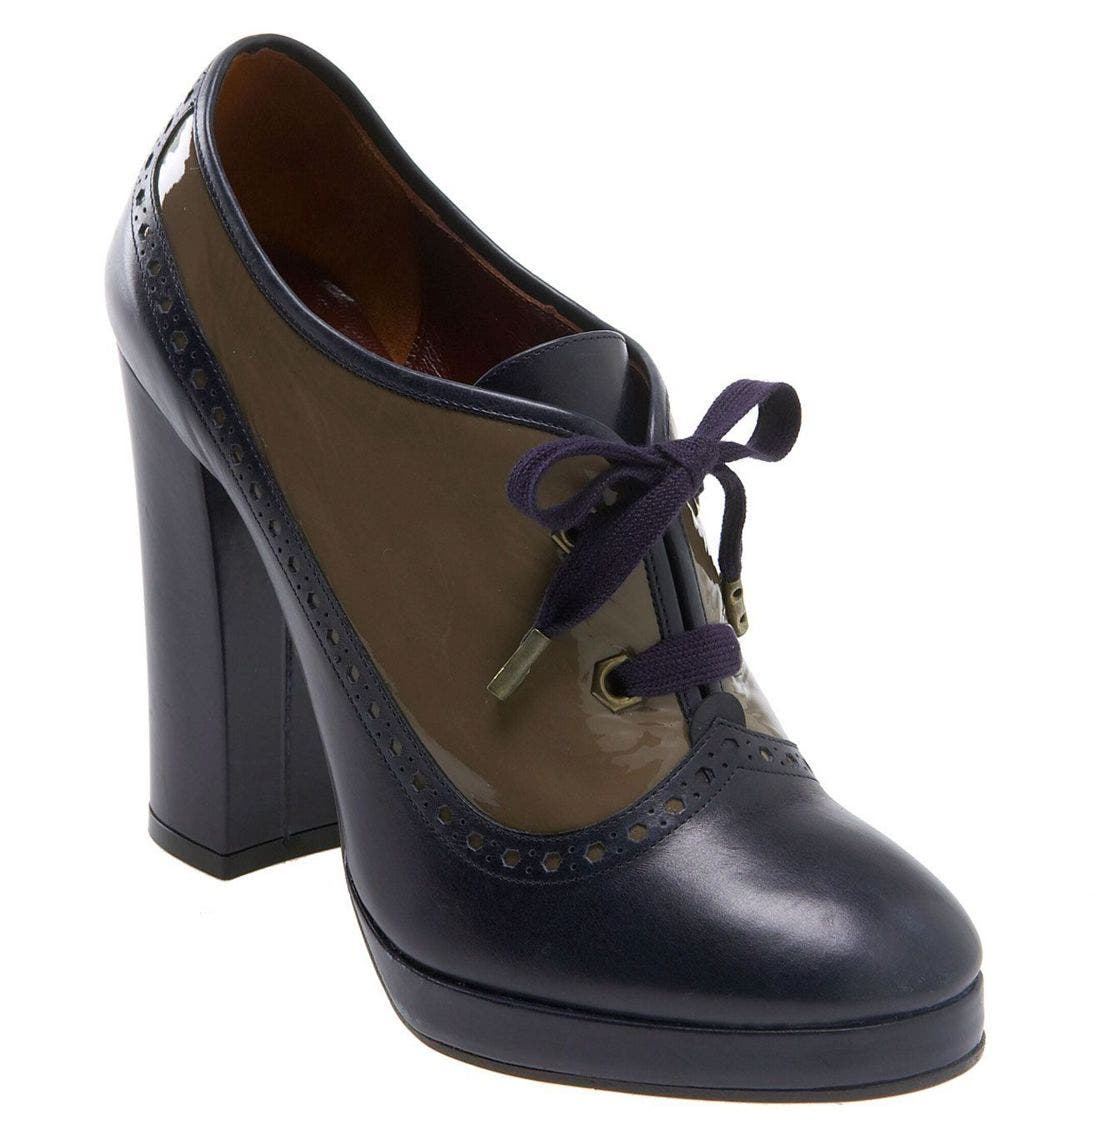 Main Image - MARC BY MARC JACOBS '674920' Oxford